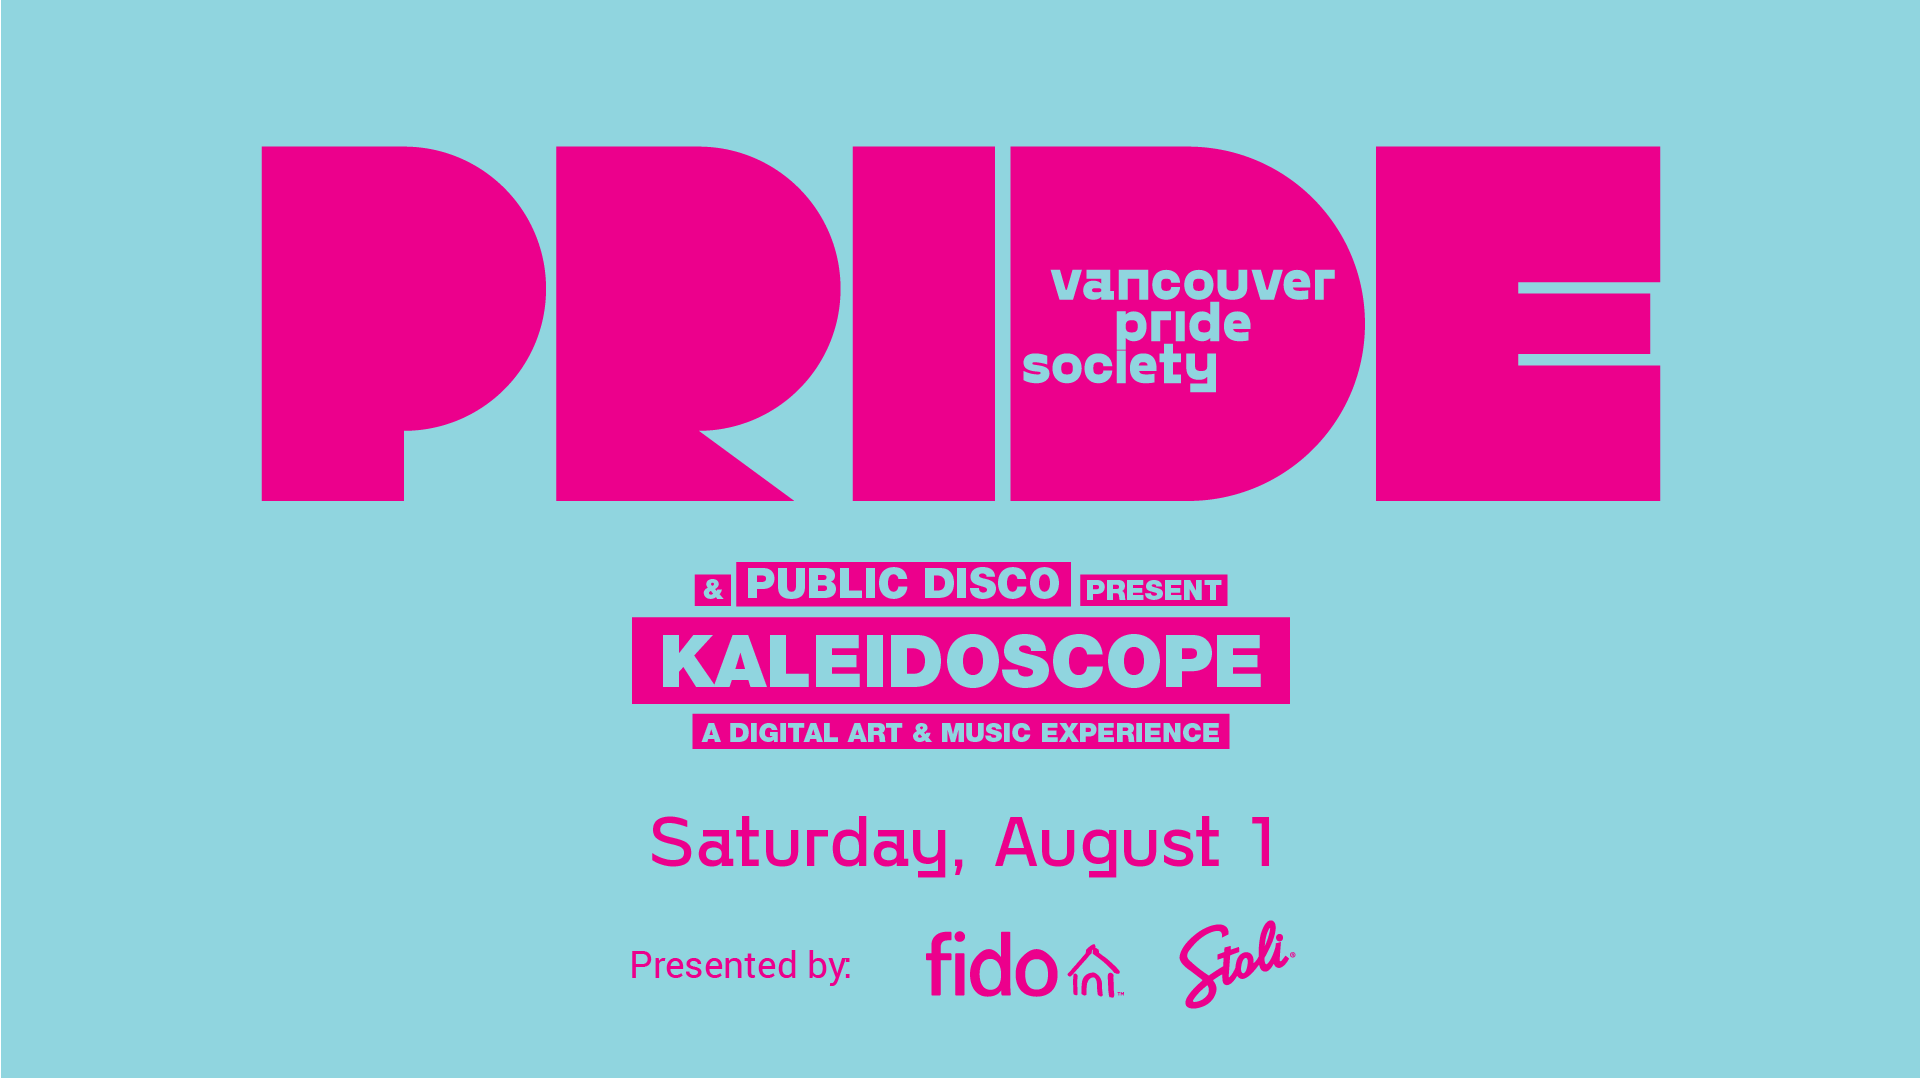 A pale blue background has bright pink text that reads PRIDE & Public Disco present KALEIDOSCOPE A Digital Art & Music Experience.